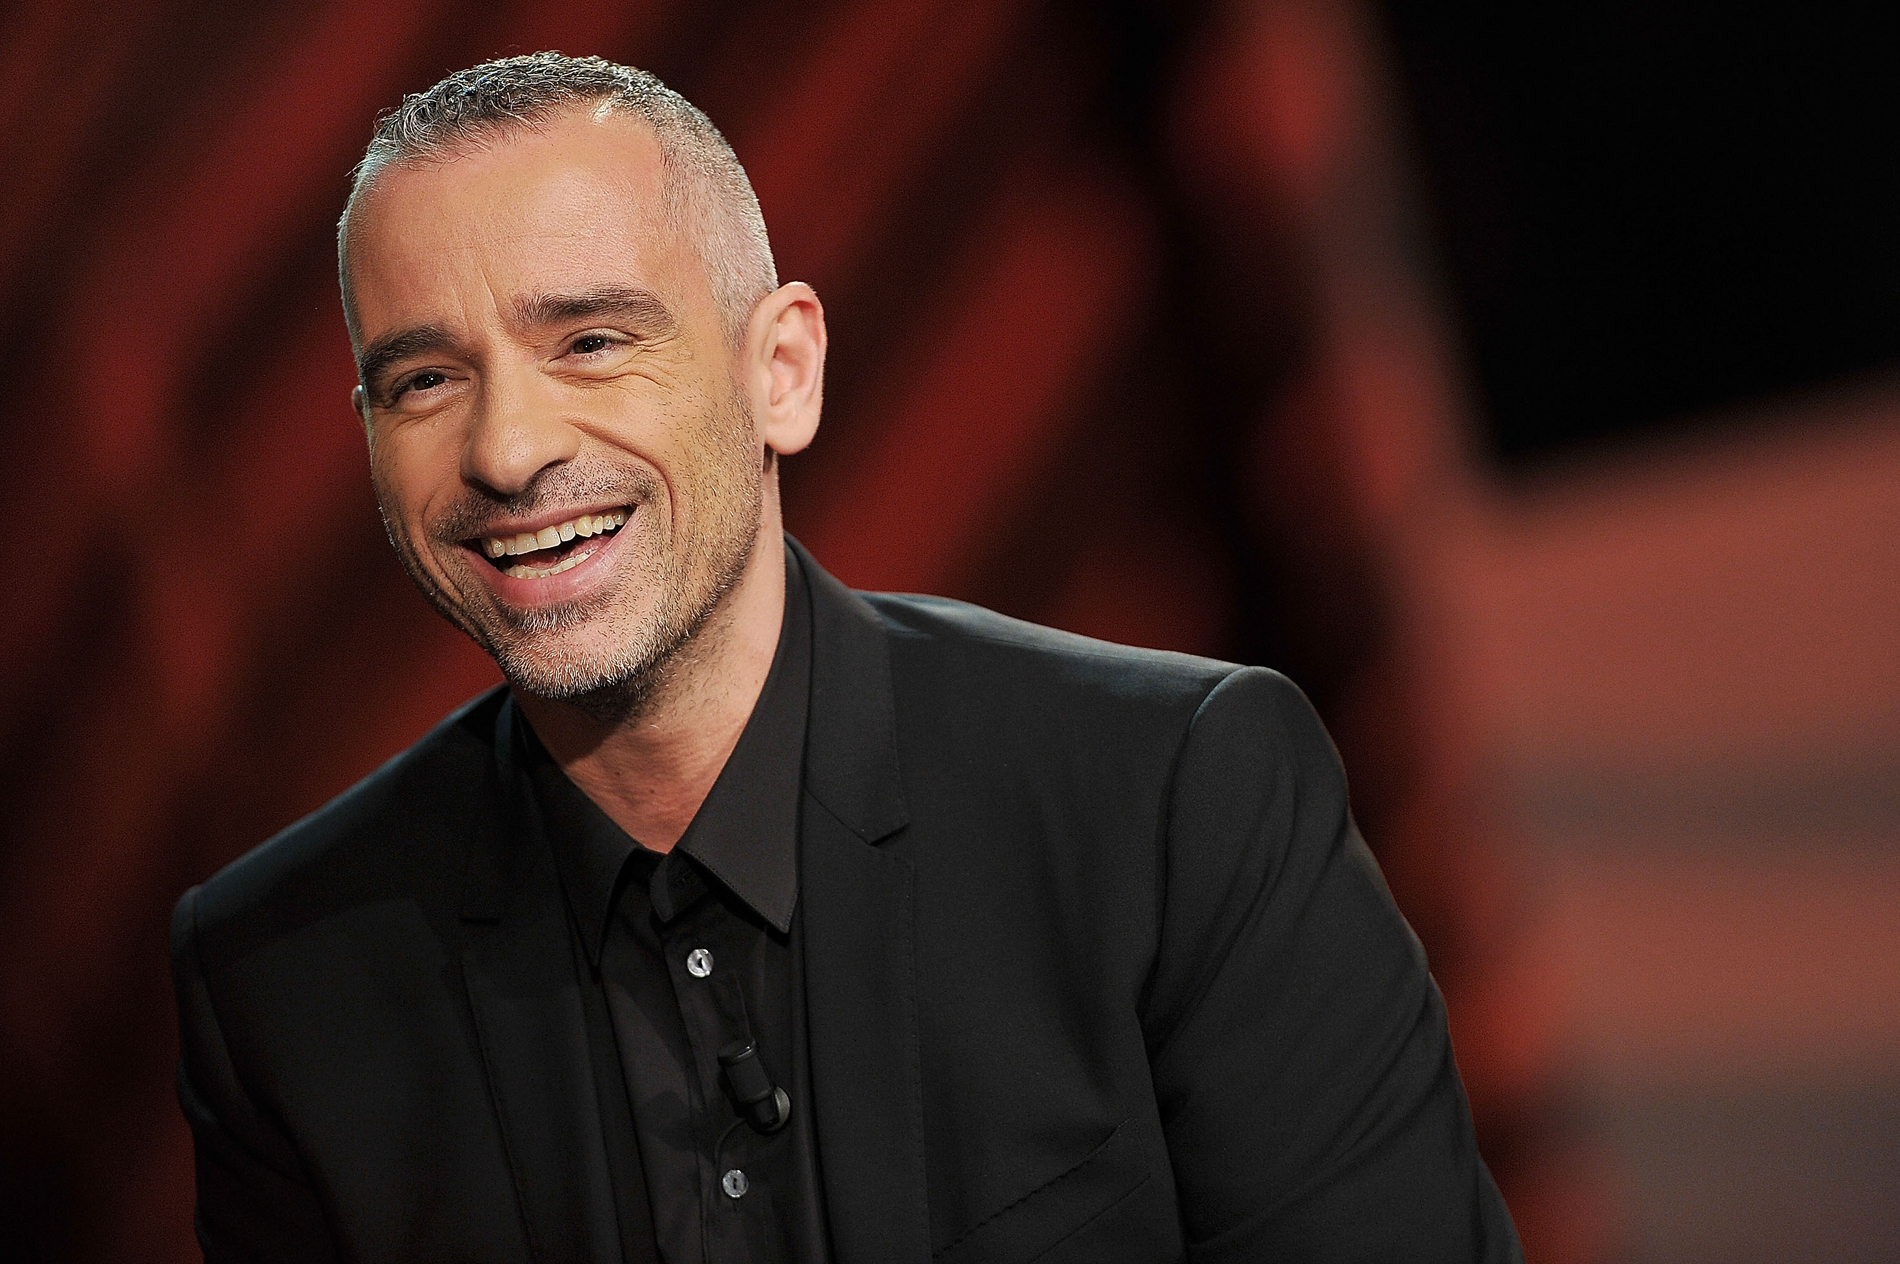 MILAN, ITALY - NOVEMBER 25:  Eros Ramazzotti attends 'Che Tempo Che Fa' Italian TV Show on November 25, 2012 in Milan, Italy.  (Photo by Stefania D'Alessandro/Getty Images)